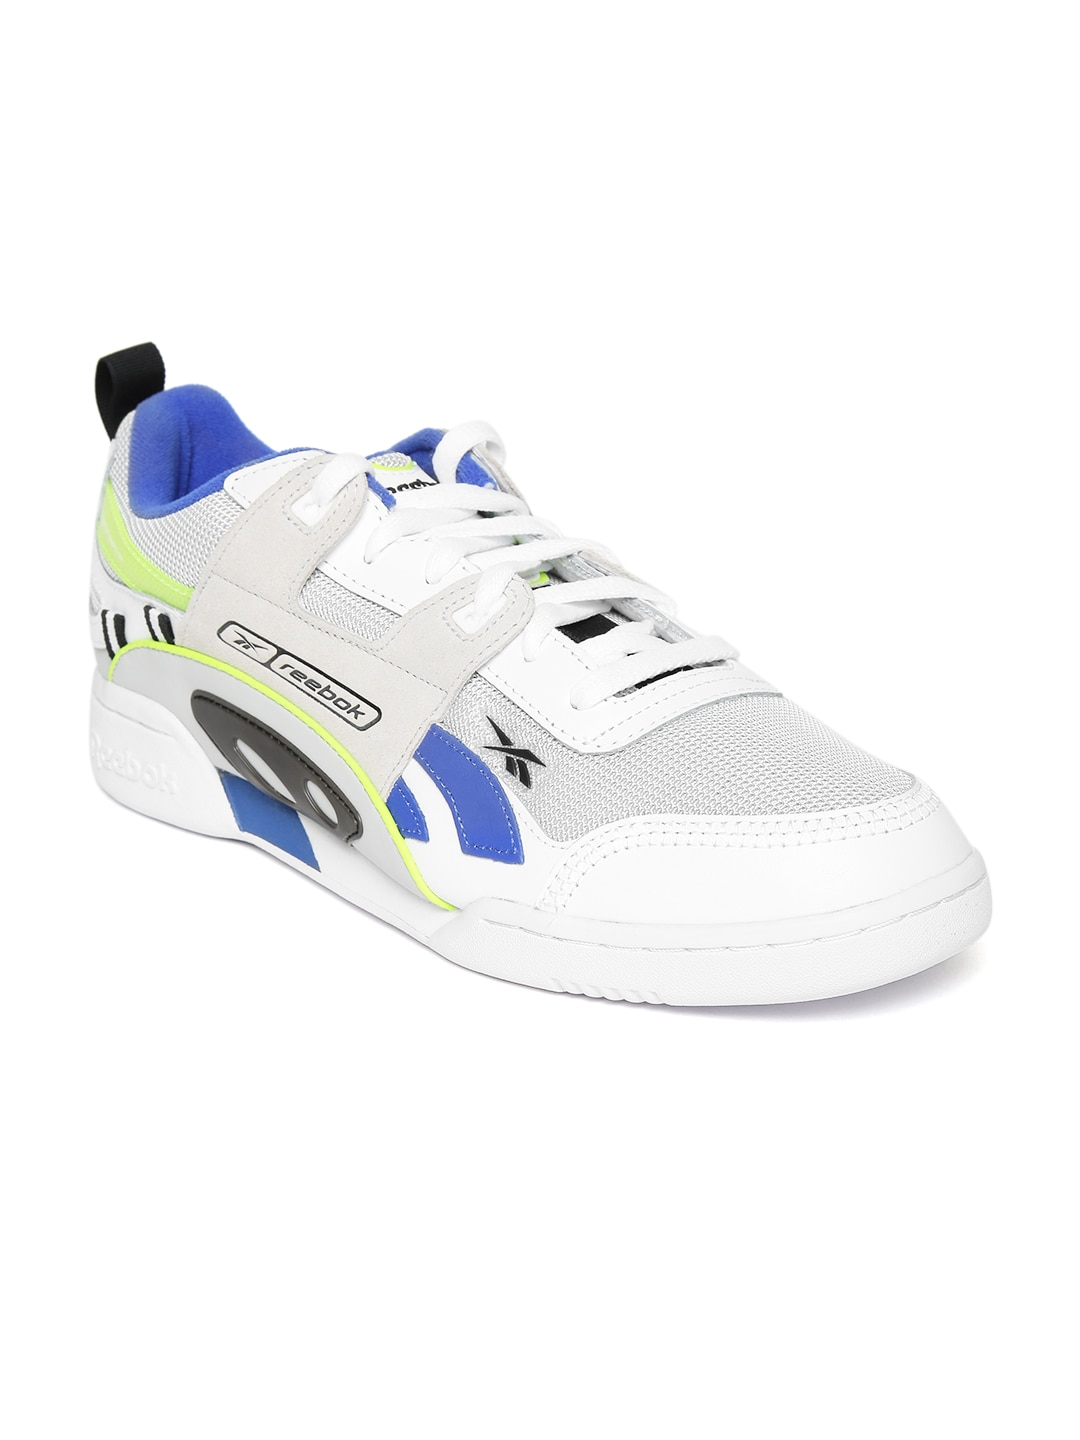 1871645501d0d Reebok Classic Shoes - Buy Reebok Classic Shoes online in India